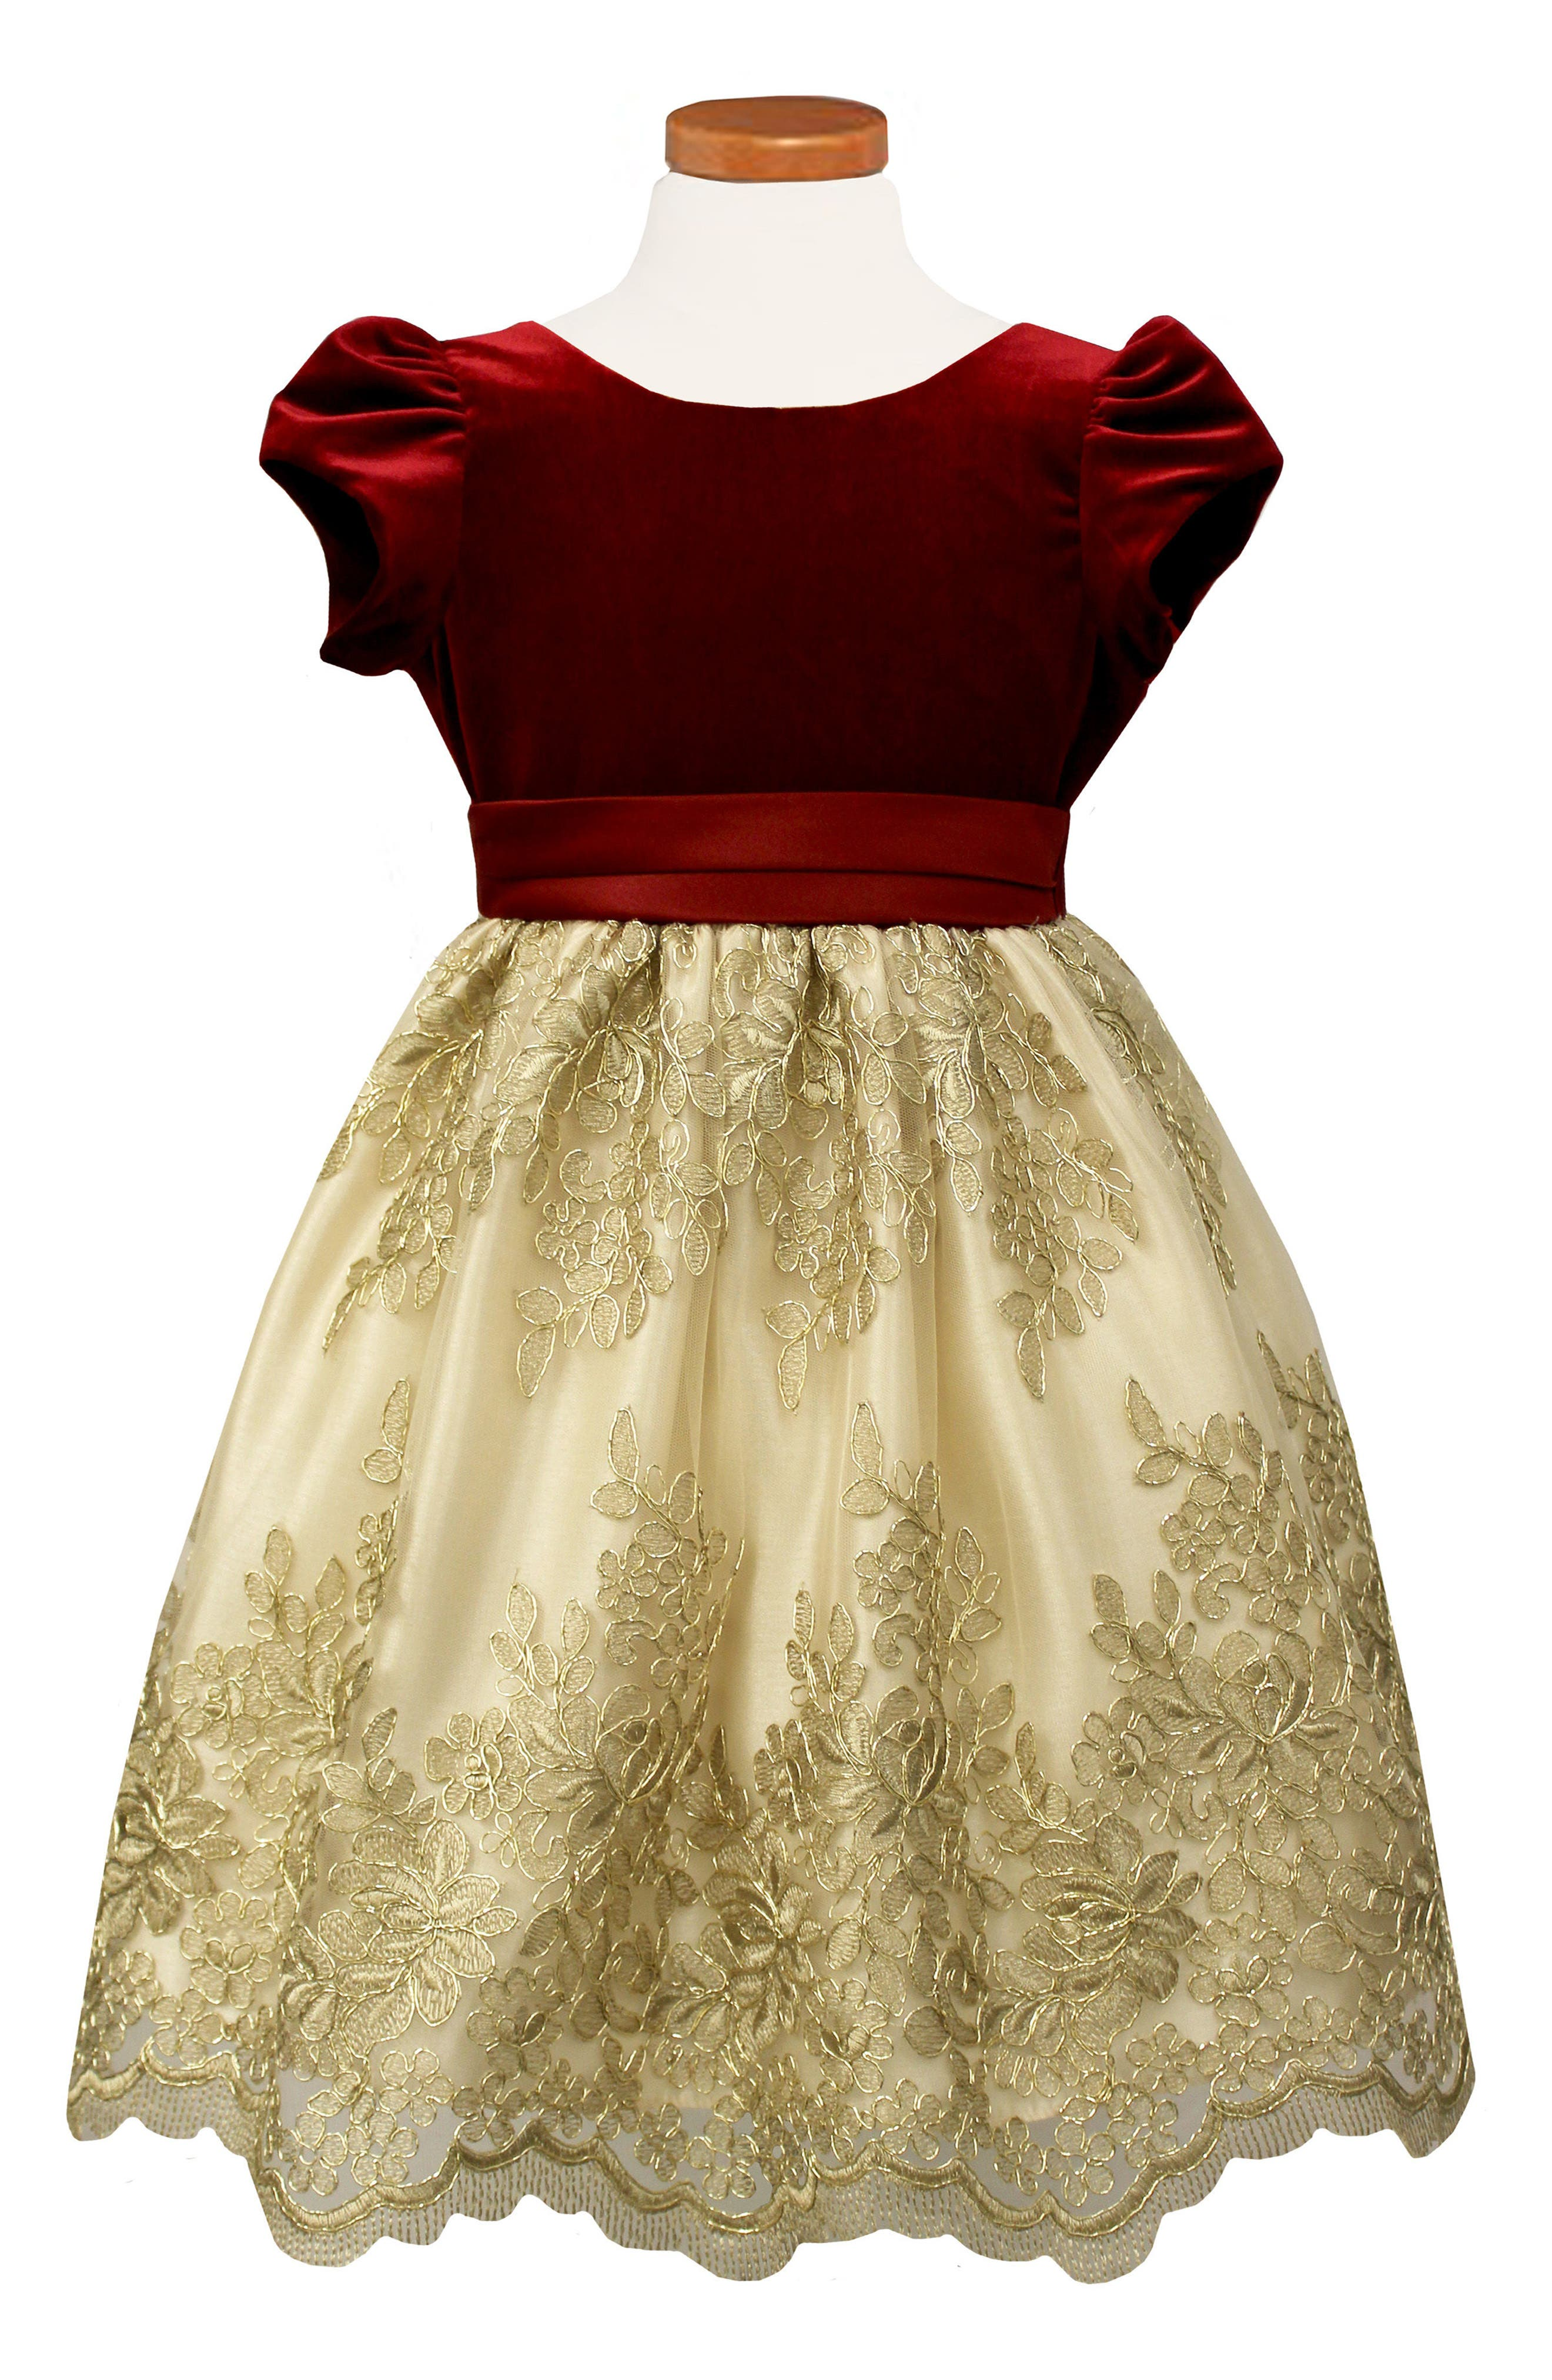 Floral Embroidered Party Dress,                             Main thumbnail 1, color,                             710